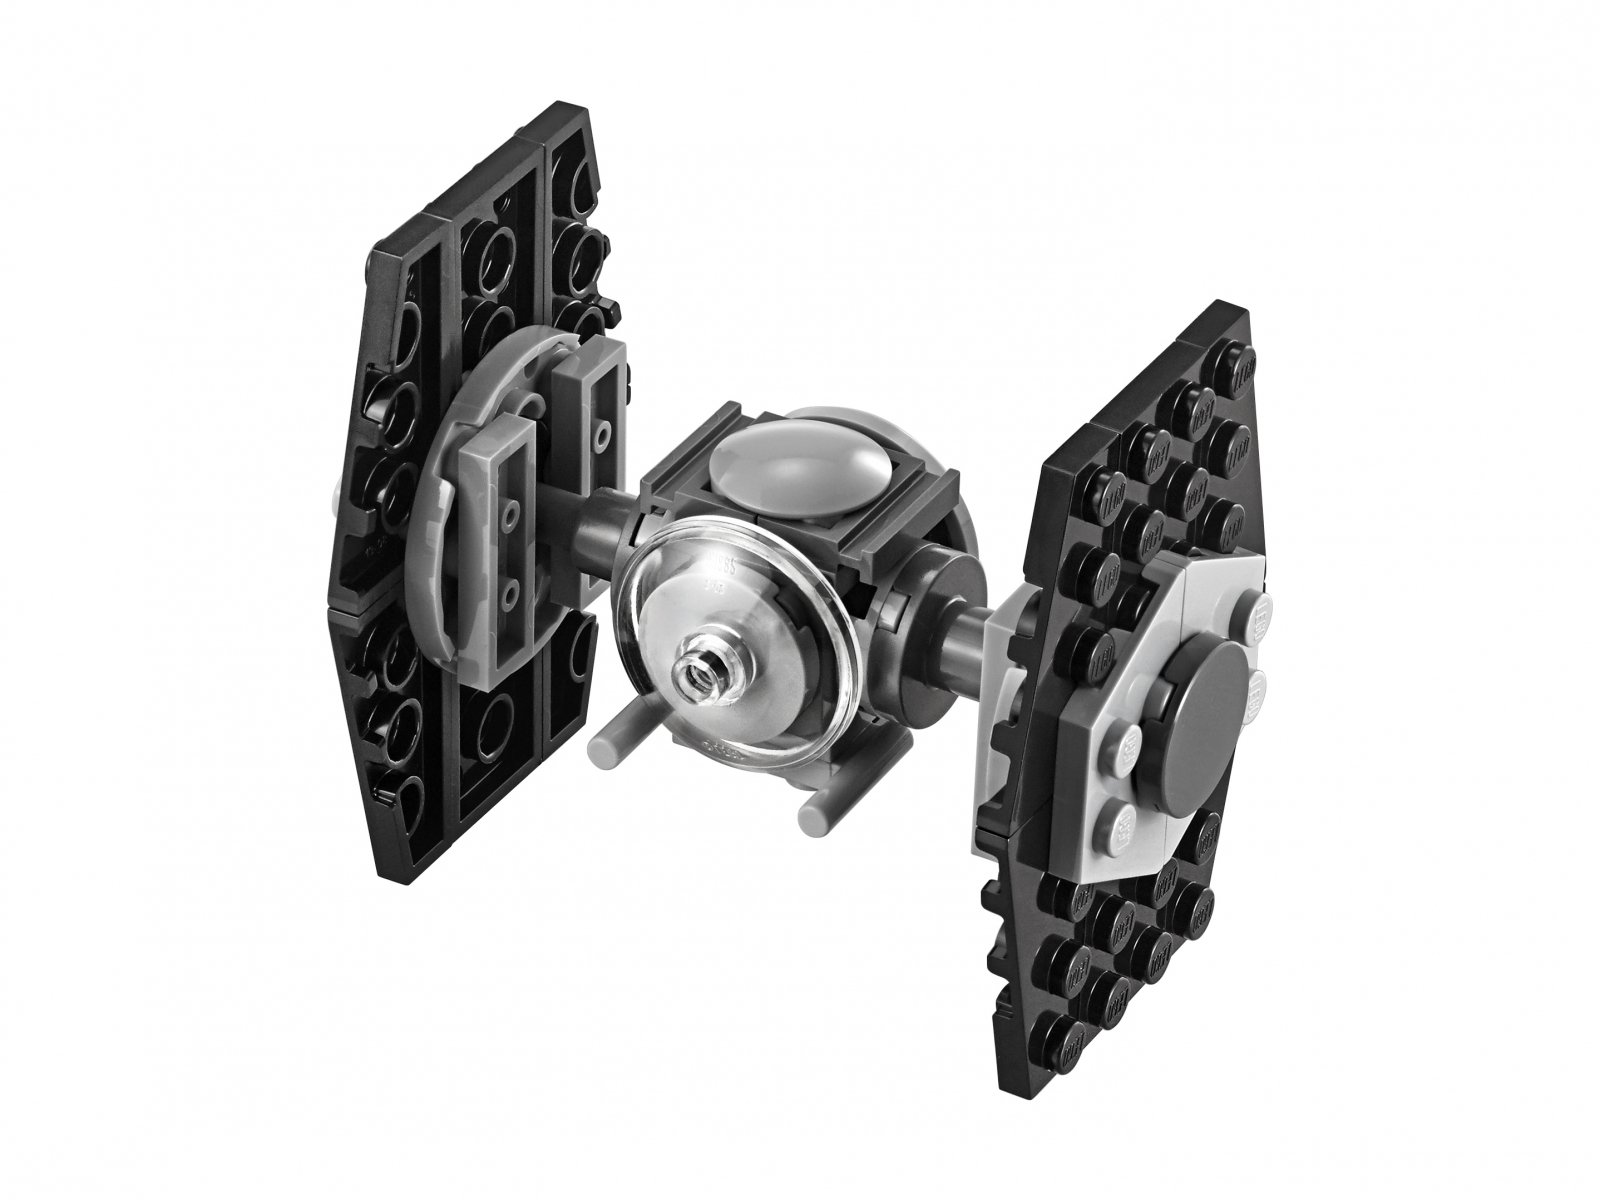 Lego Star Wars™ 30381 Imperial TIE Fighter™